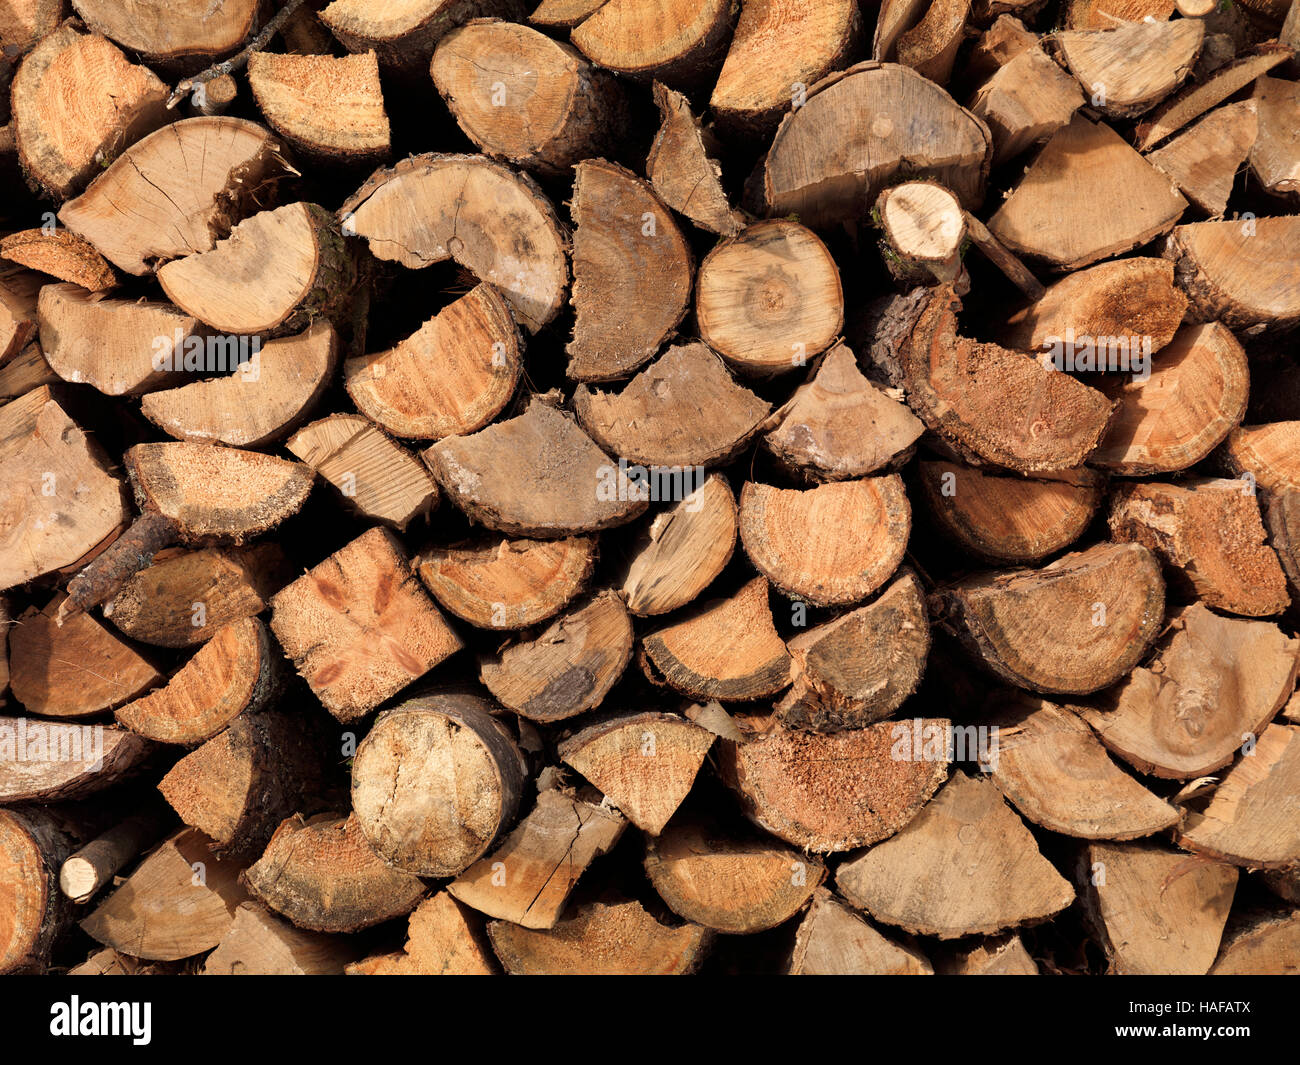 Stacked firewood supply background texture - Stock Image